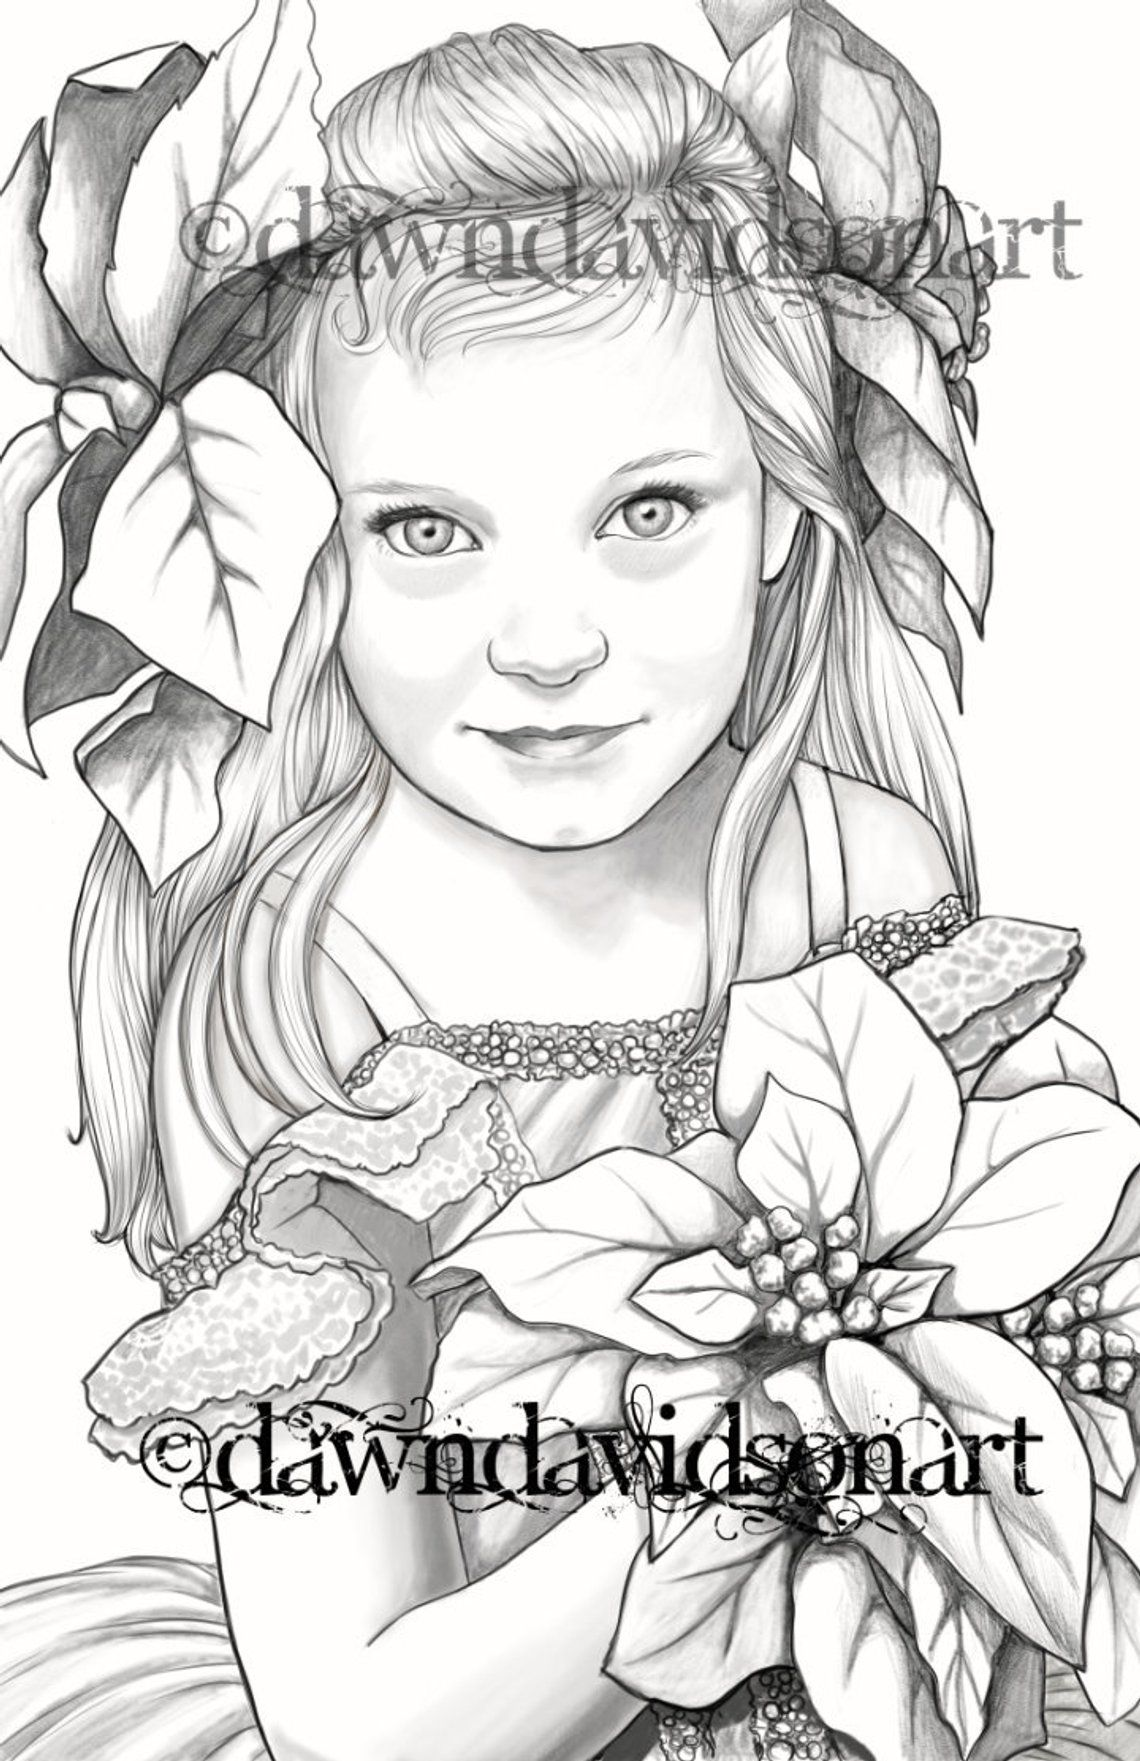 This is an image of Free Printable Grayscale Coloring Pages intended for mermaid